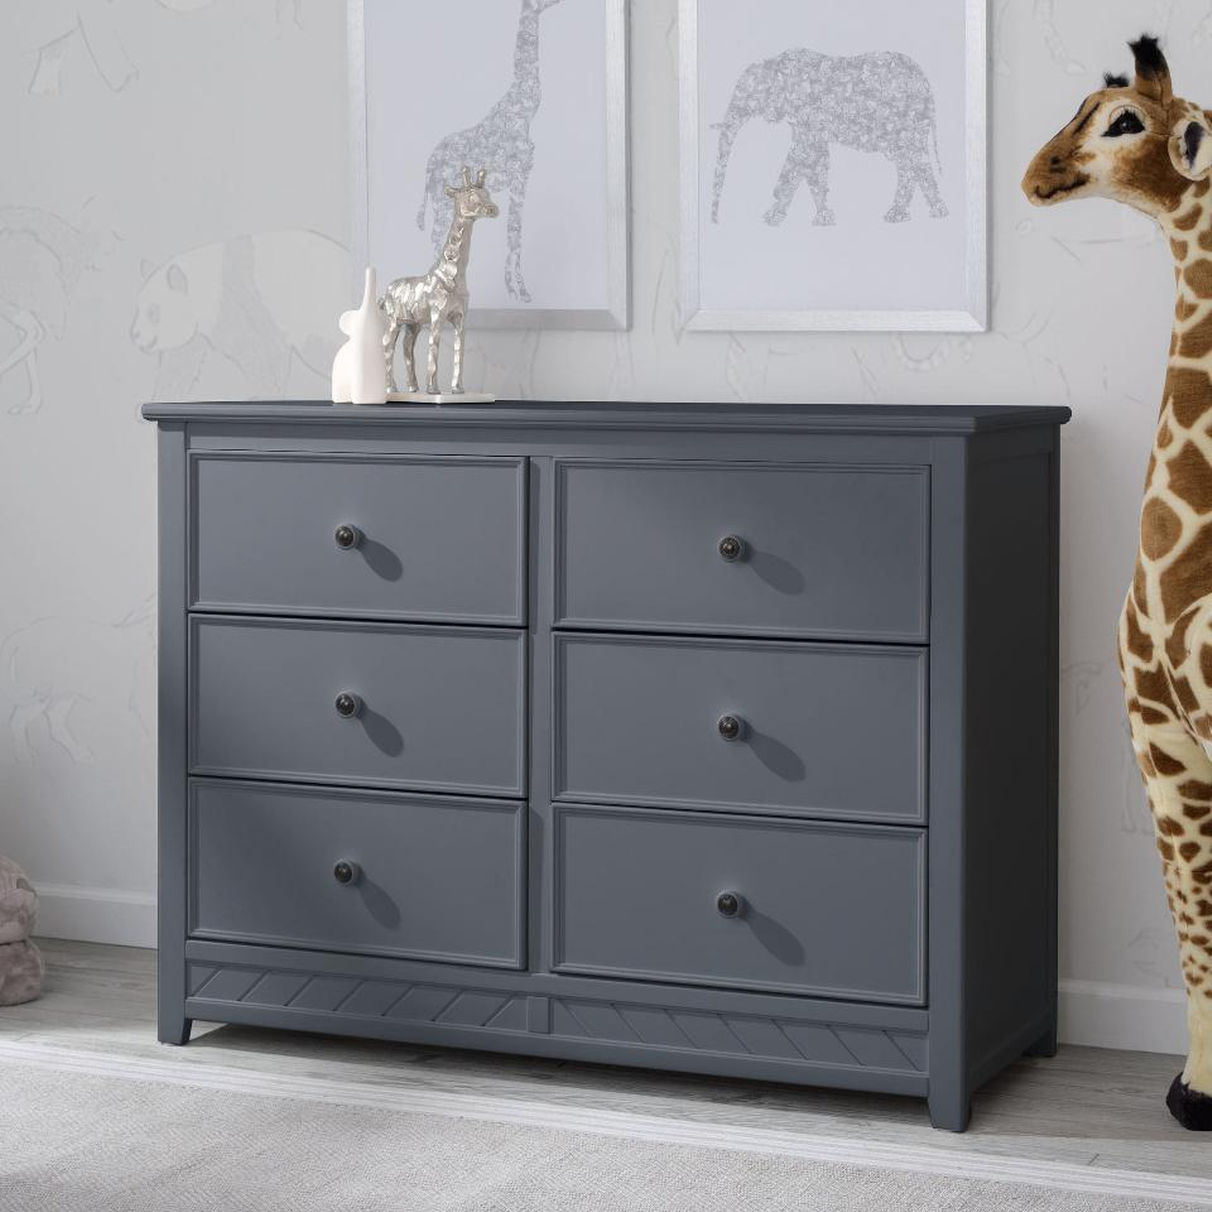 Picture of: New Painted Grey Dresser